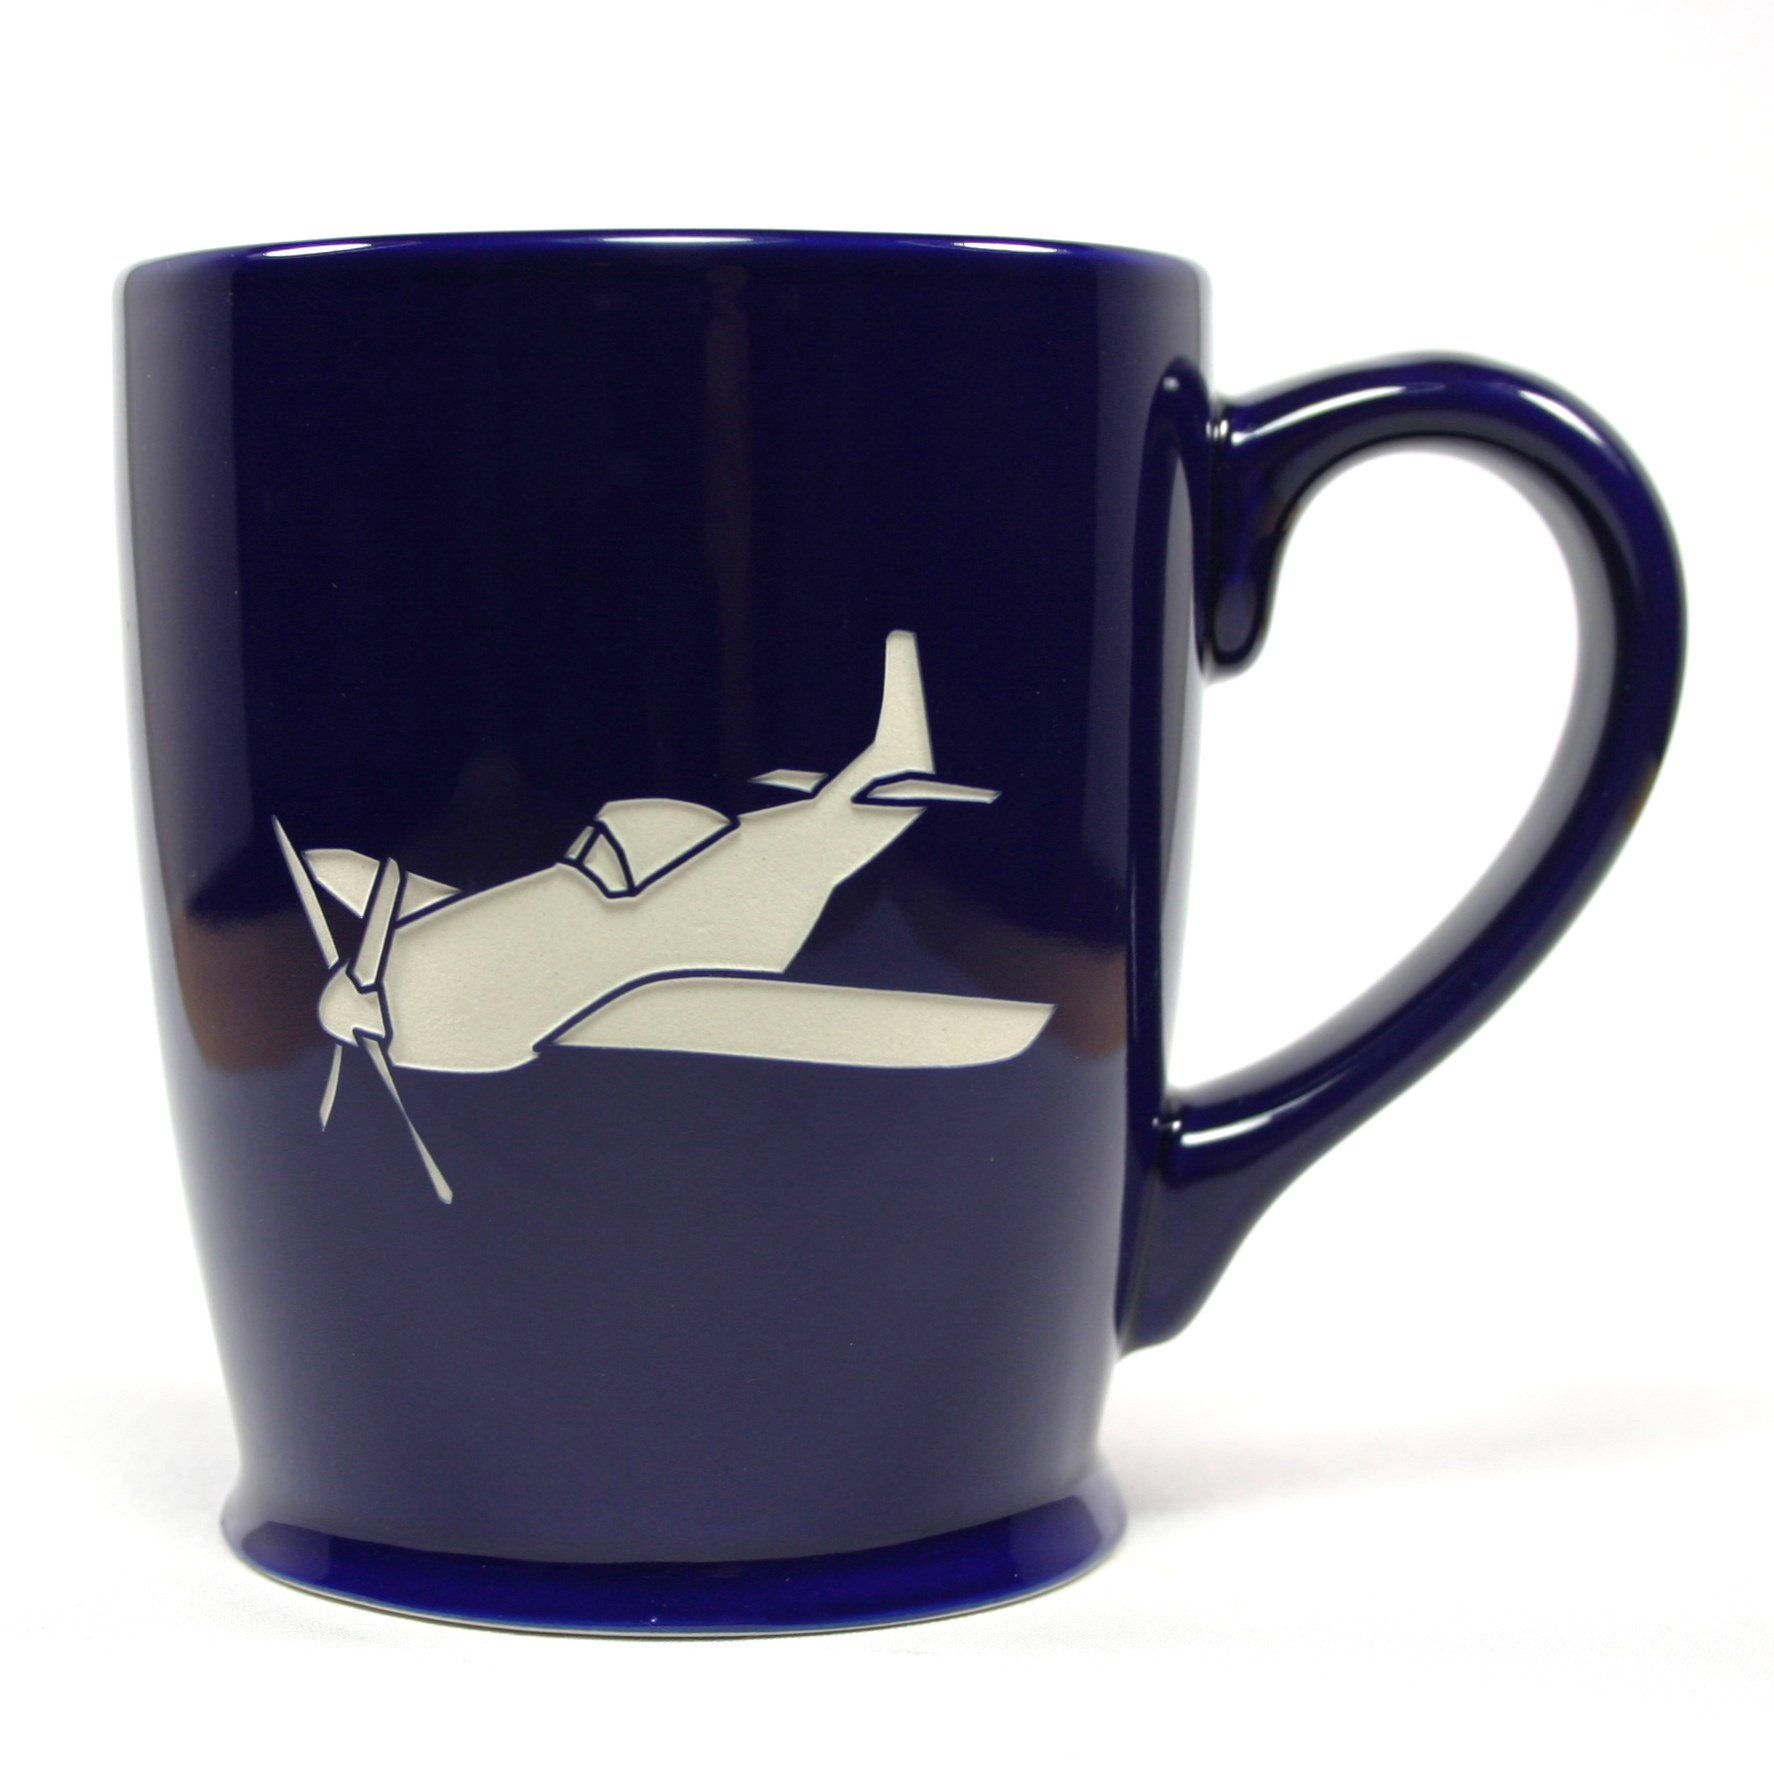 Airplane Mug (Retired) Mugs, Coffee mugs, Pilot gifts